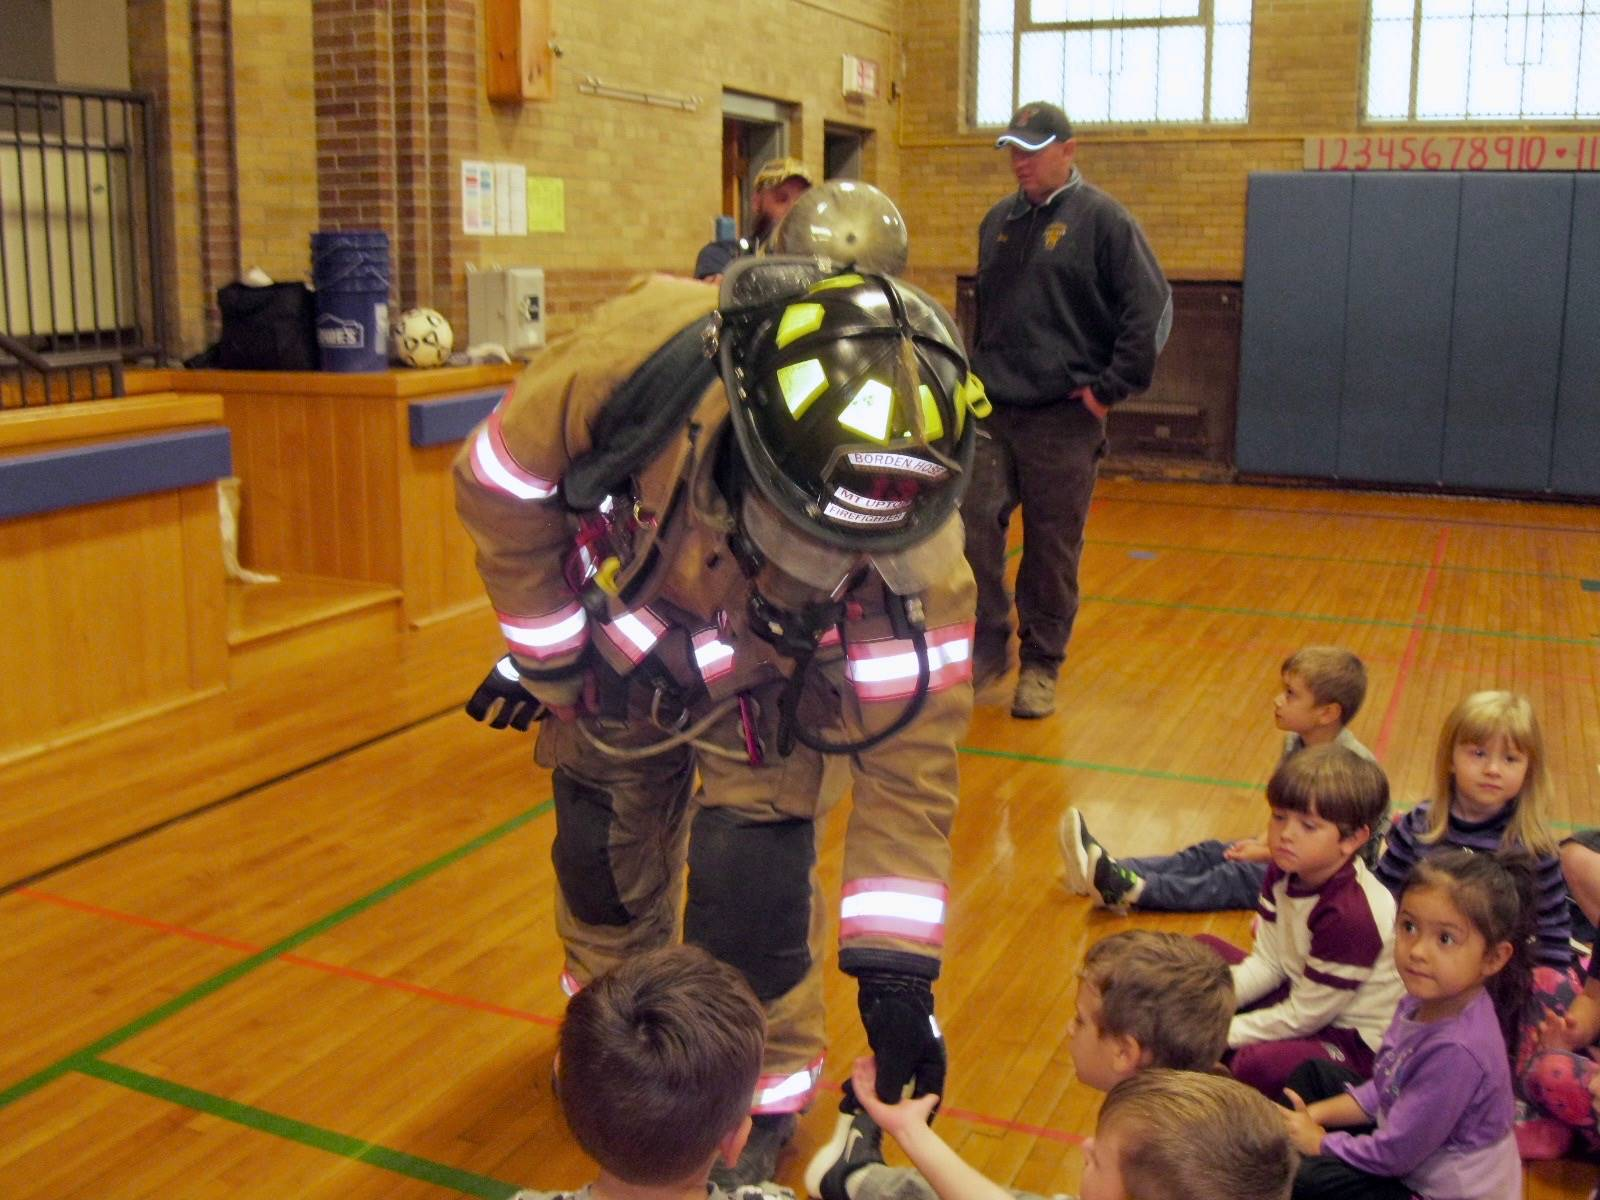 Firefighter shakes students' hands.